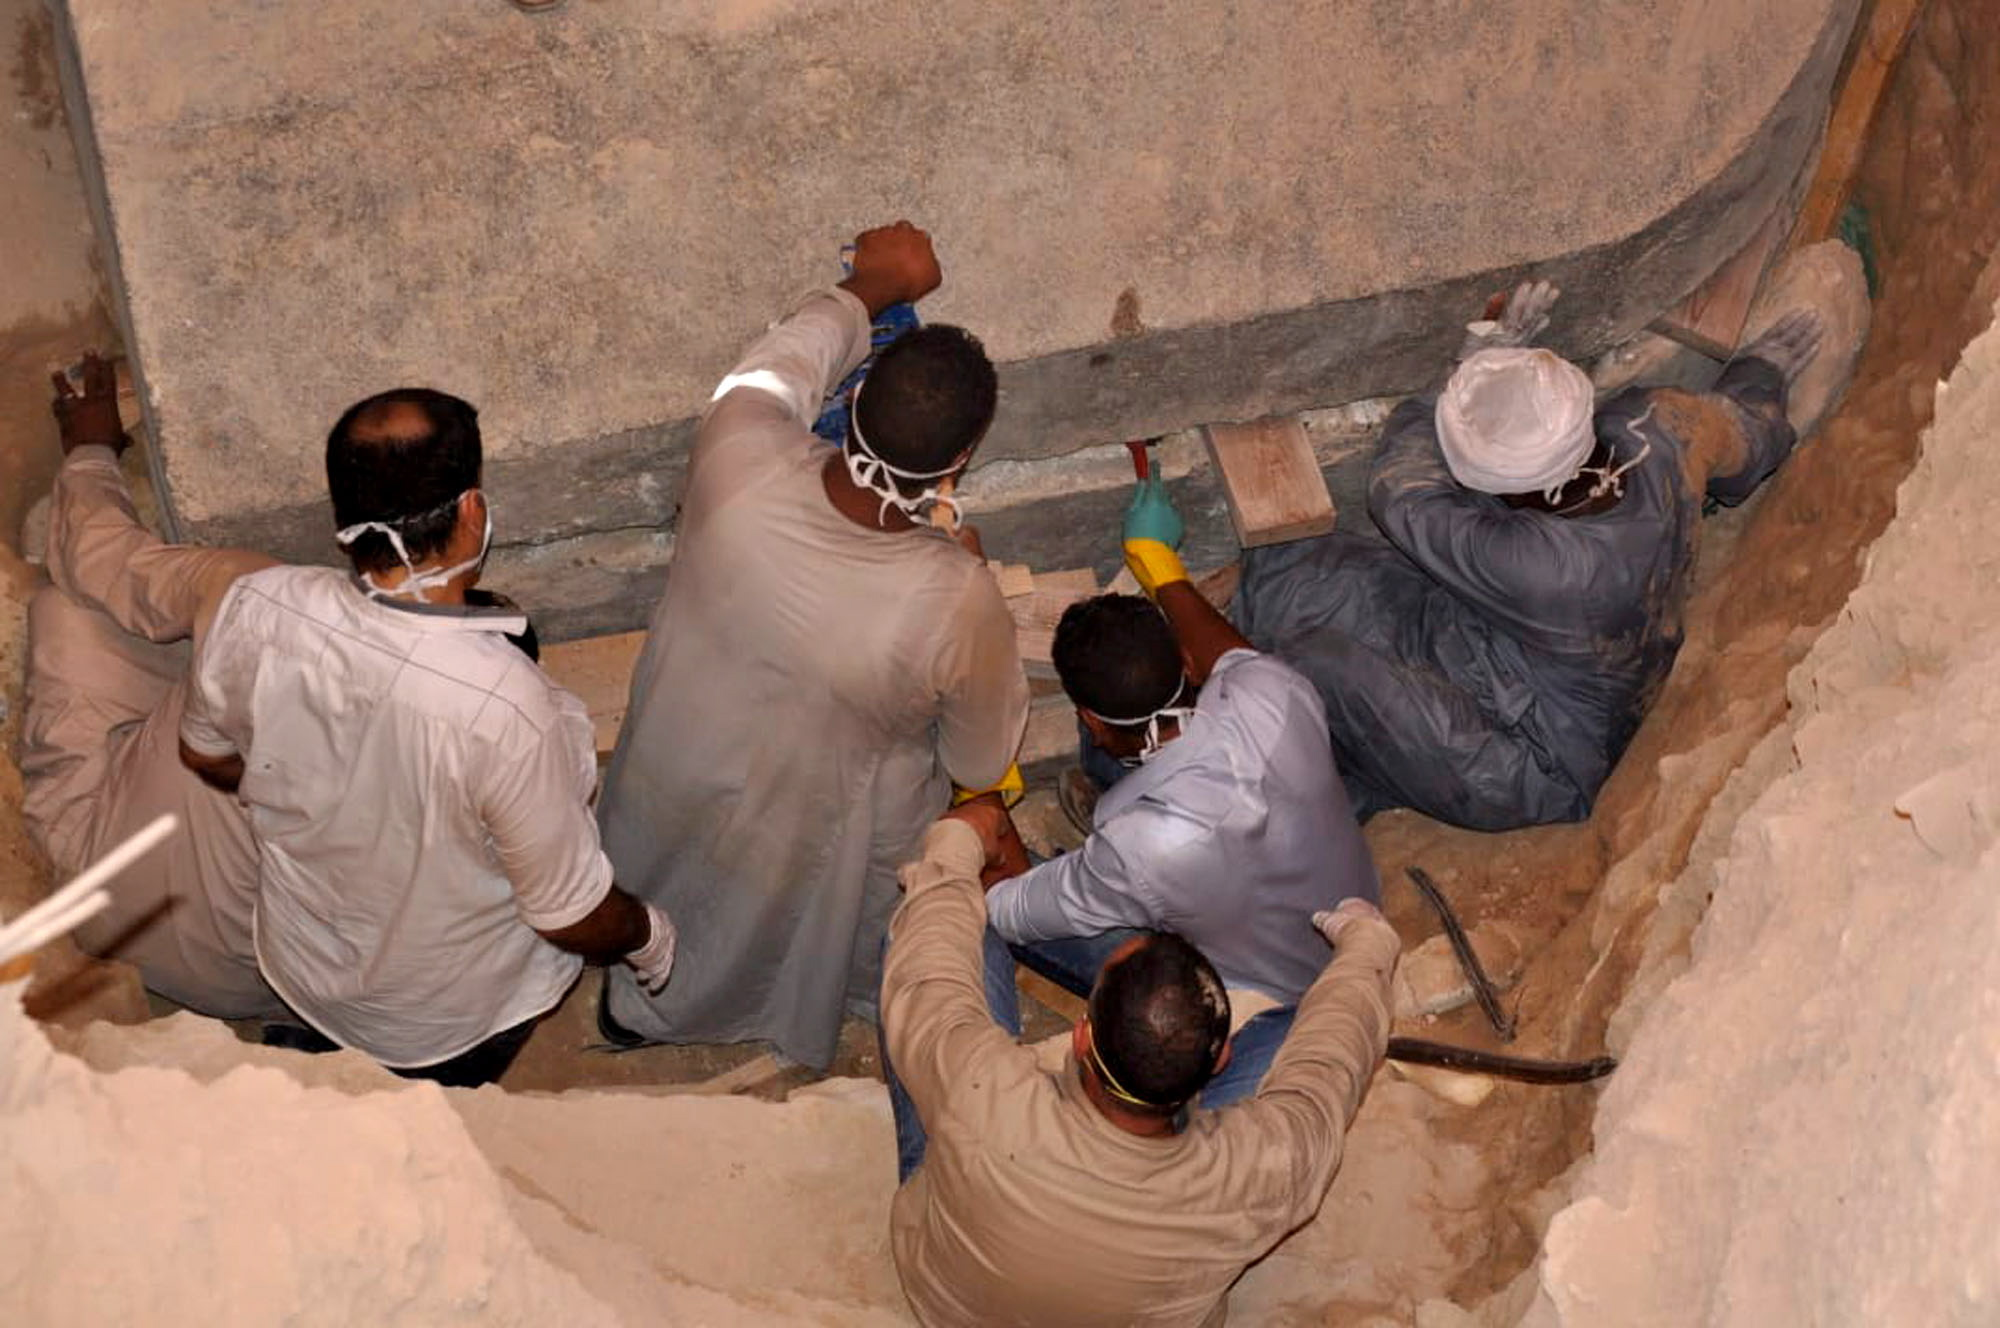 A handout photo made available by the Egyptian Ministry of Antiquities shows workers preparing to open the black granite sarcophagus that was discovered in Sidi Gaber district, Alexandria, Egypt, 19 July 2018.